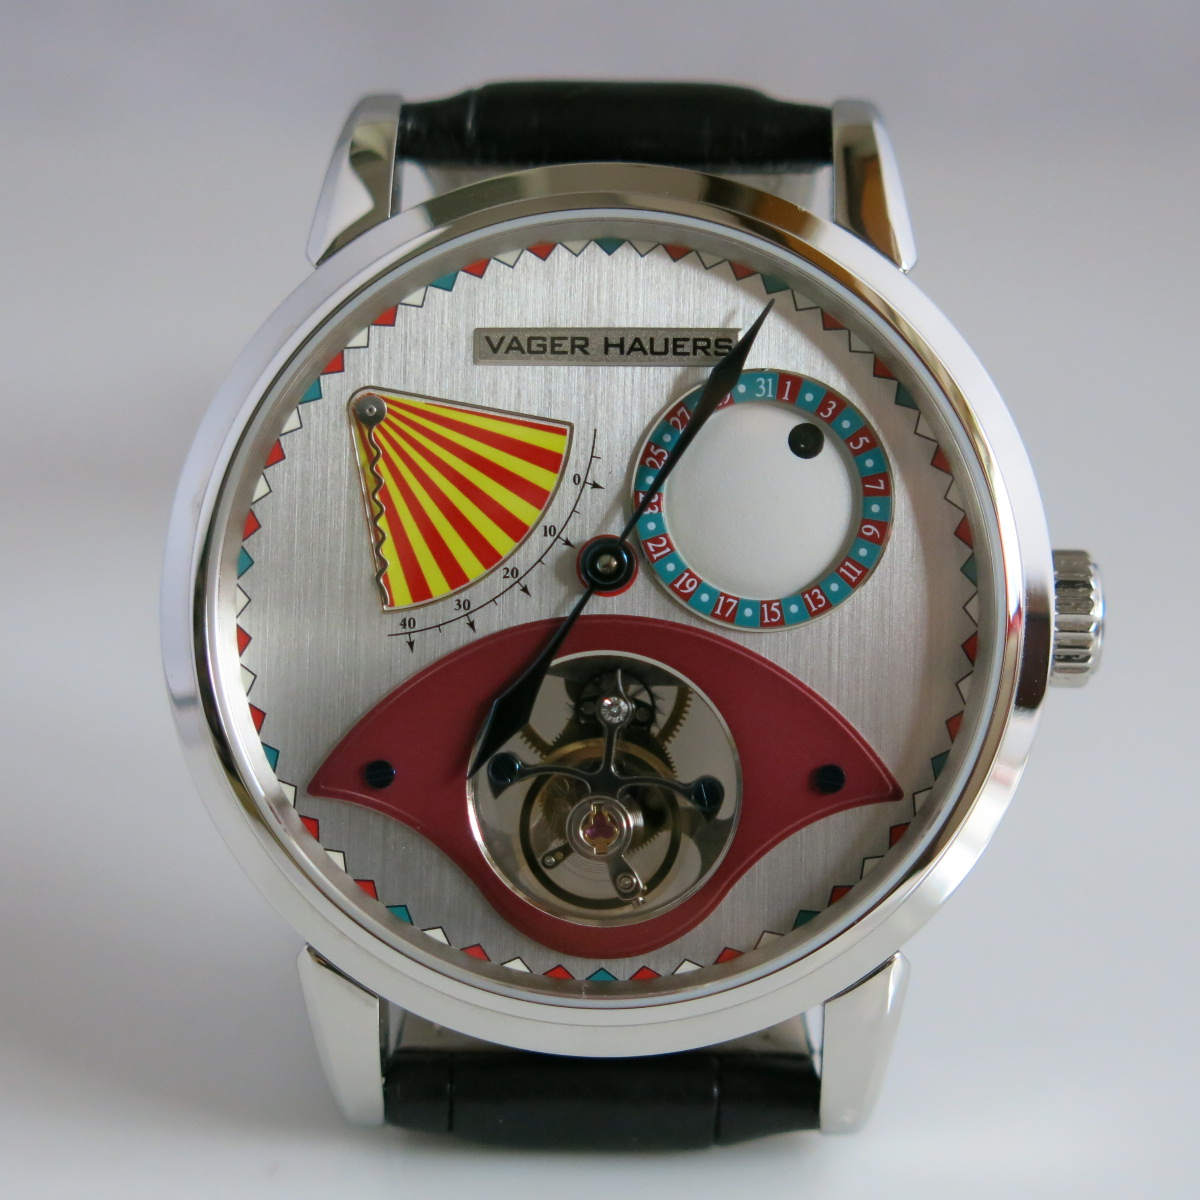 Clown tourbillon wristwatch to celebrate the 3rd anniversary of Vager Hauers